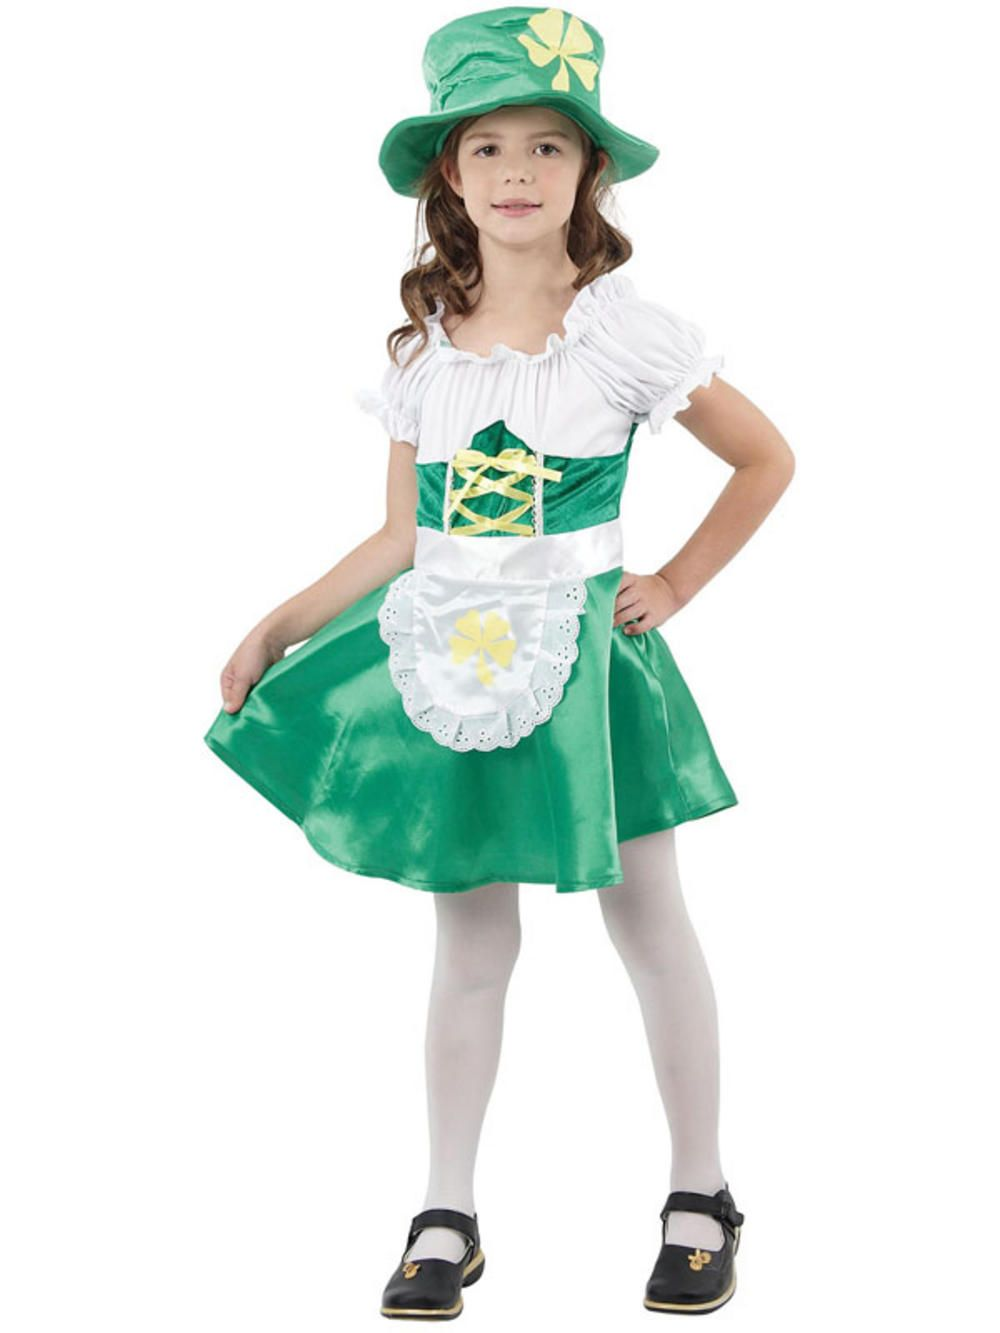 sizes for this costume are small age 3 5 years height